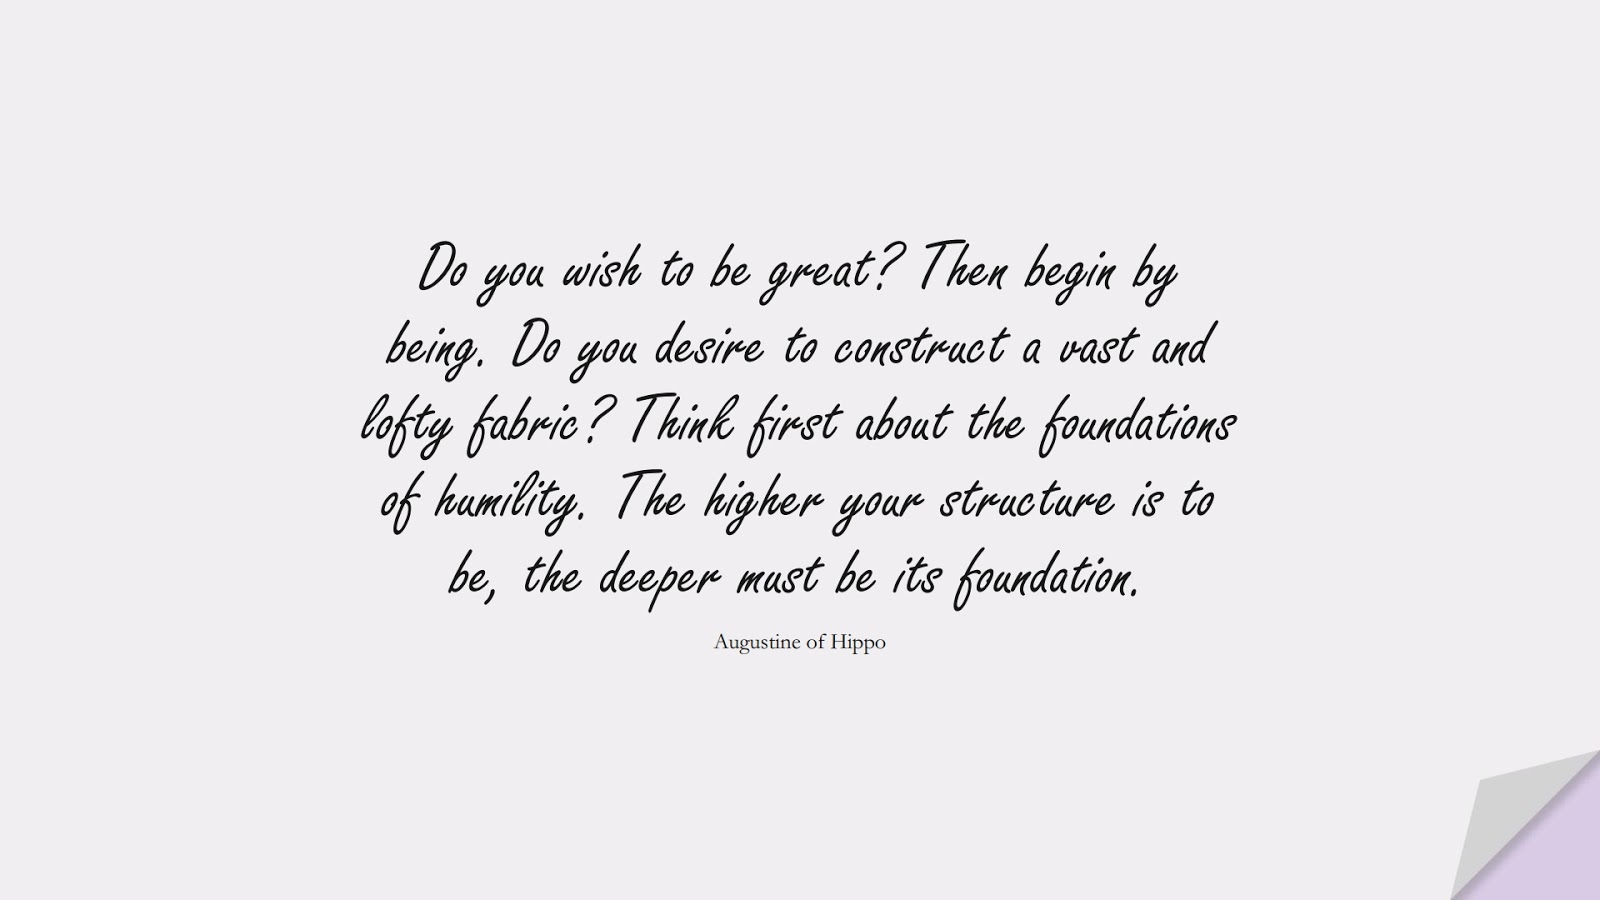 Do you wish to be great? Then begin by being. Do you desire to construct a vast and lofty fabric? Think first about the foundations of humility. The higher your structure is to be, the deeper must be its foundation. (Augustine of Hippo);  #BestQuotes